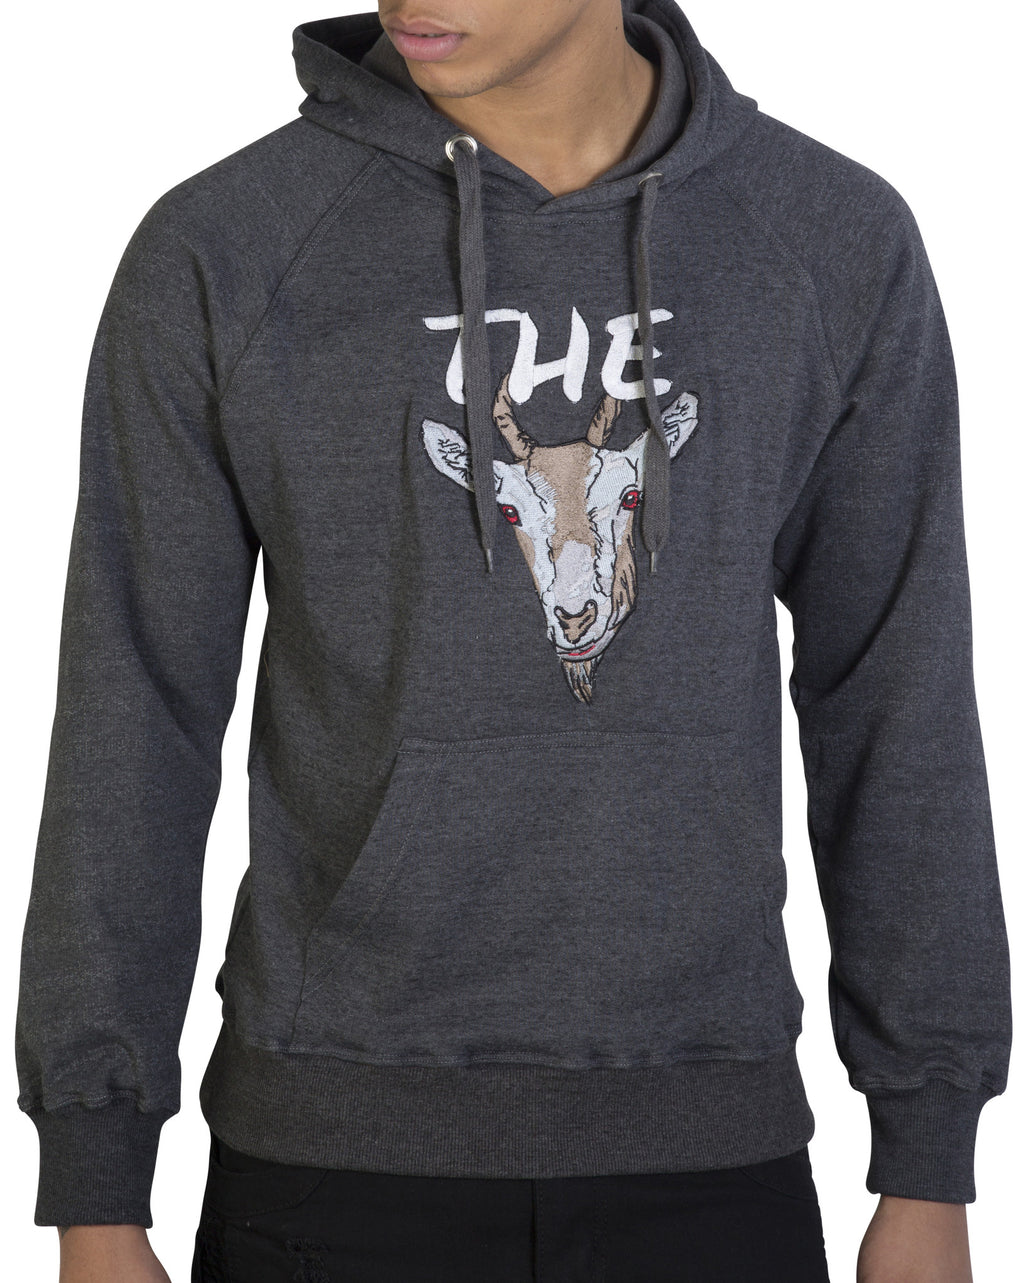 Dark Grey 'The GOAT' Hoody - Greatest Of all Time